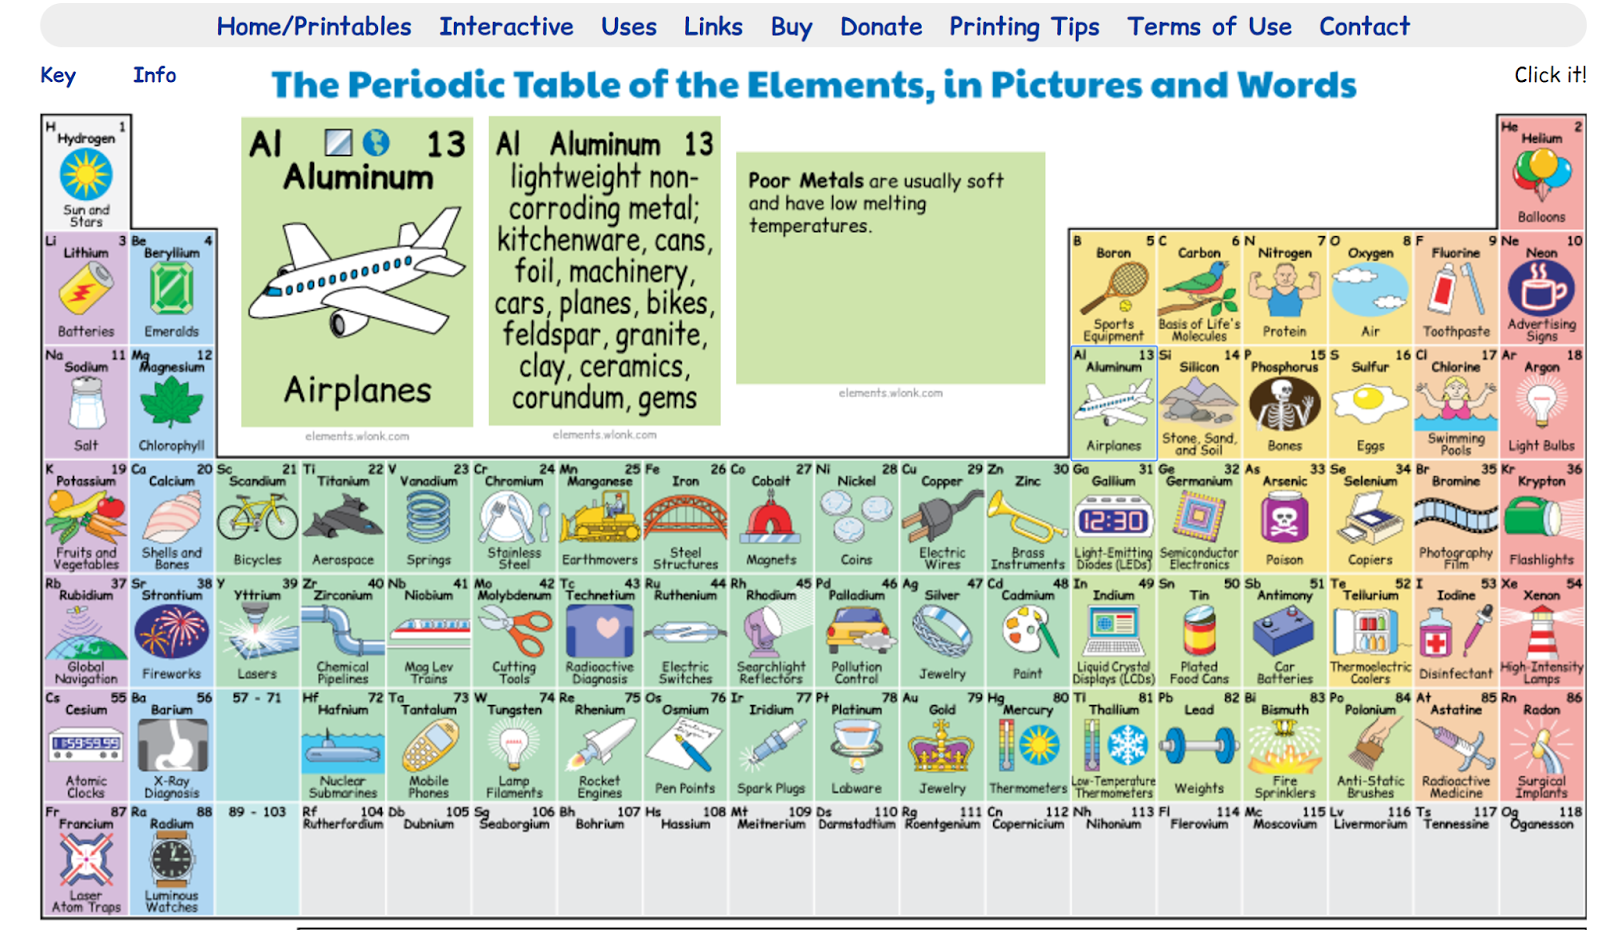 Free technology for teachers the periodic table in pictures and words the periodic table of elements in pictures and words could be a great resource for middle school science classrooms it also provides a nice model for an urtaz Image collections